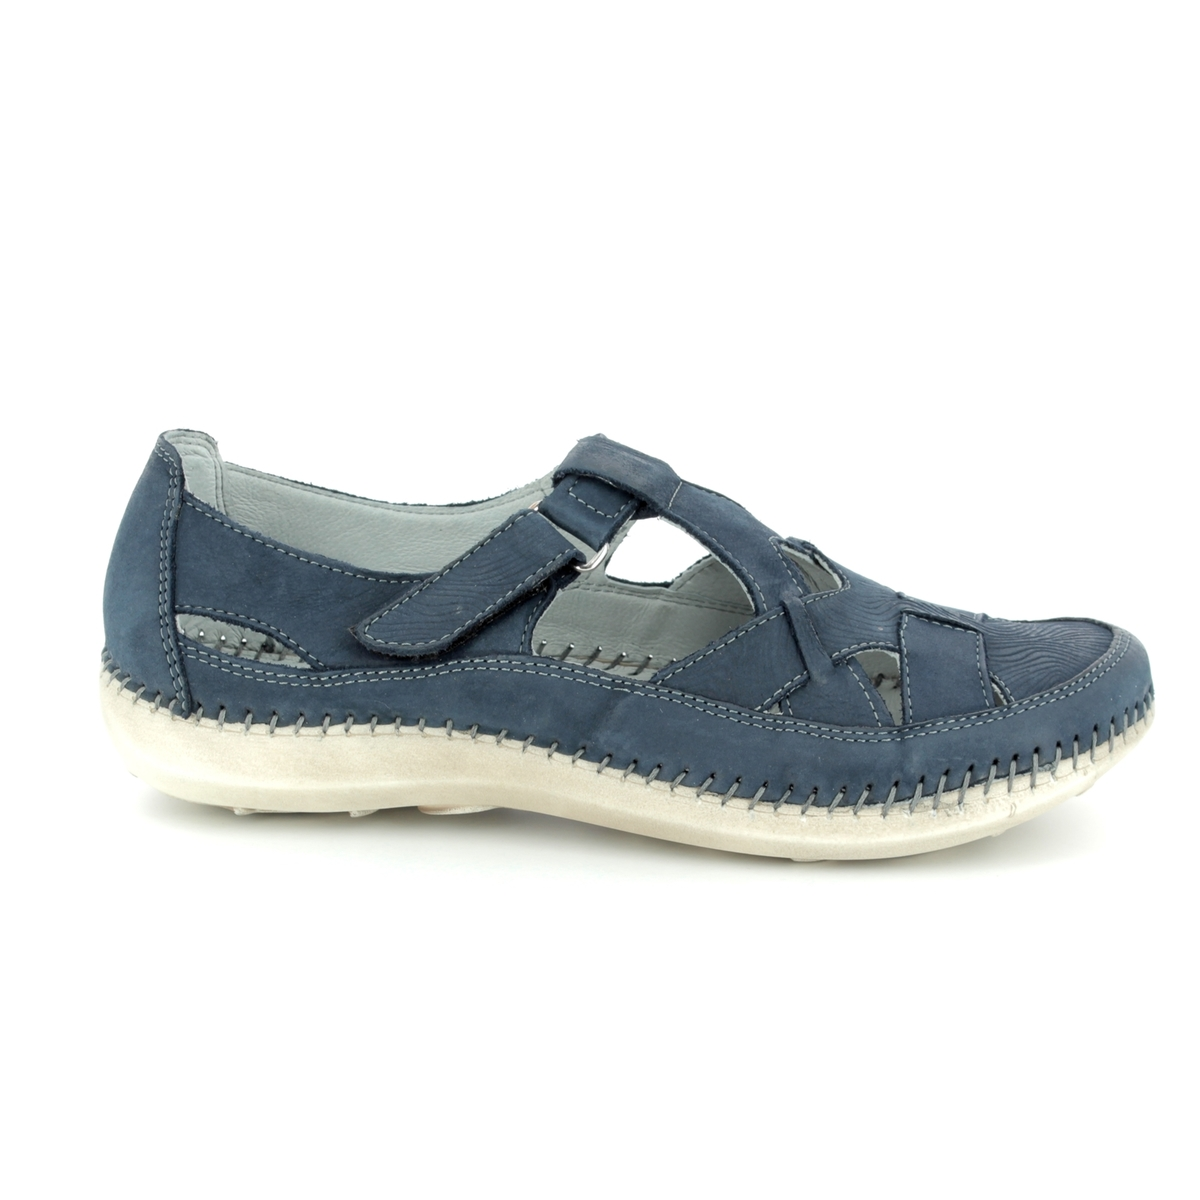 e876a010c22 Walk in the City Comfort Shoes - Blue - 7105 16030 DAISLAT